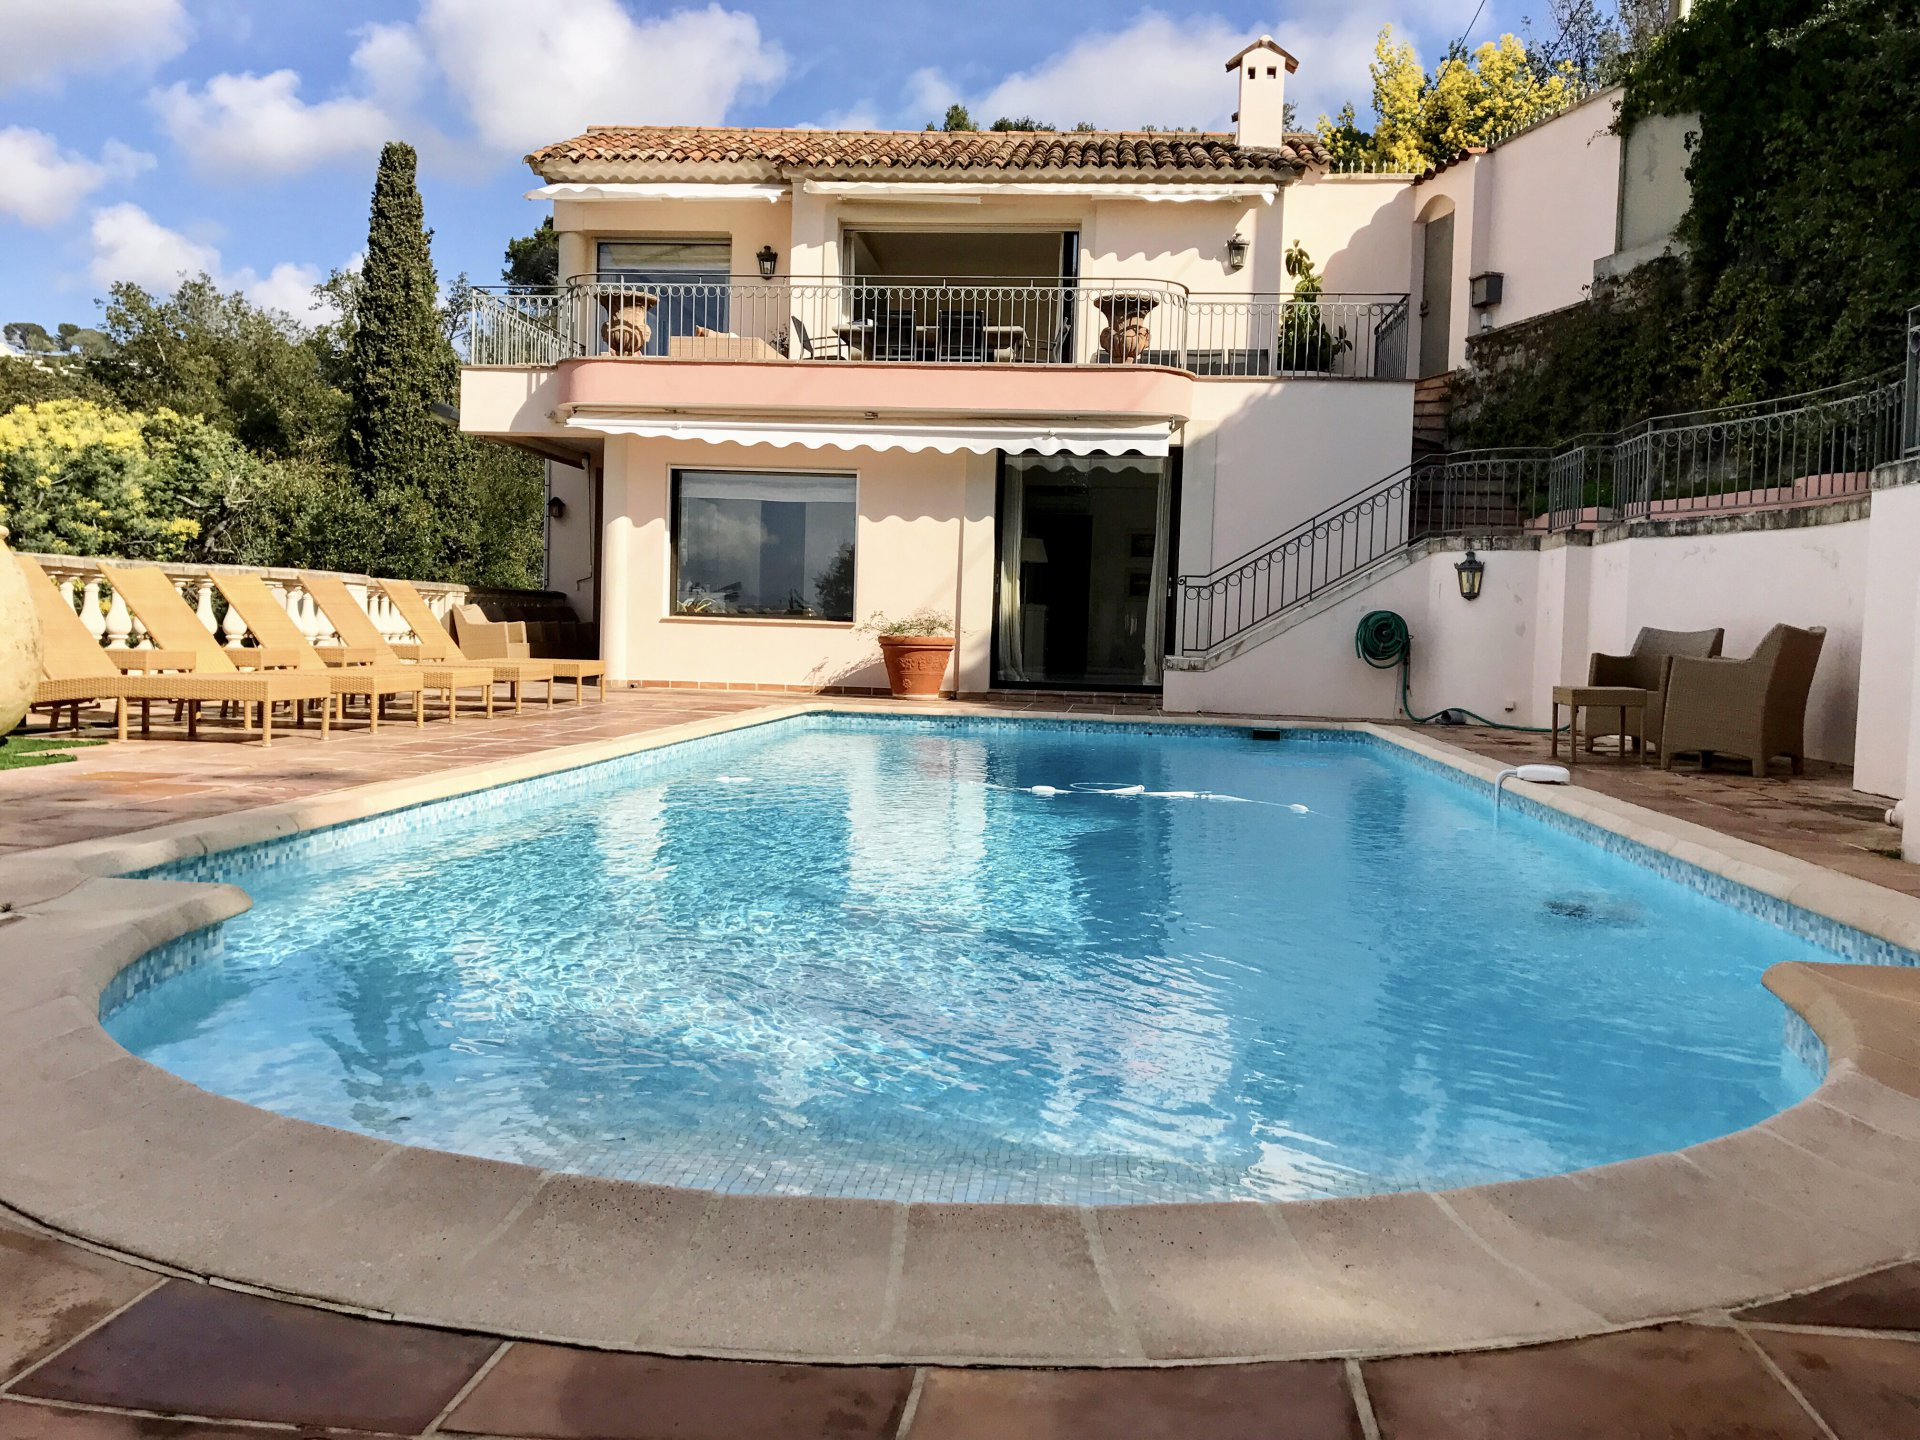 MONTFLEURY: Apartment /villa with fabulous sea view, heated swimming ...